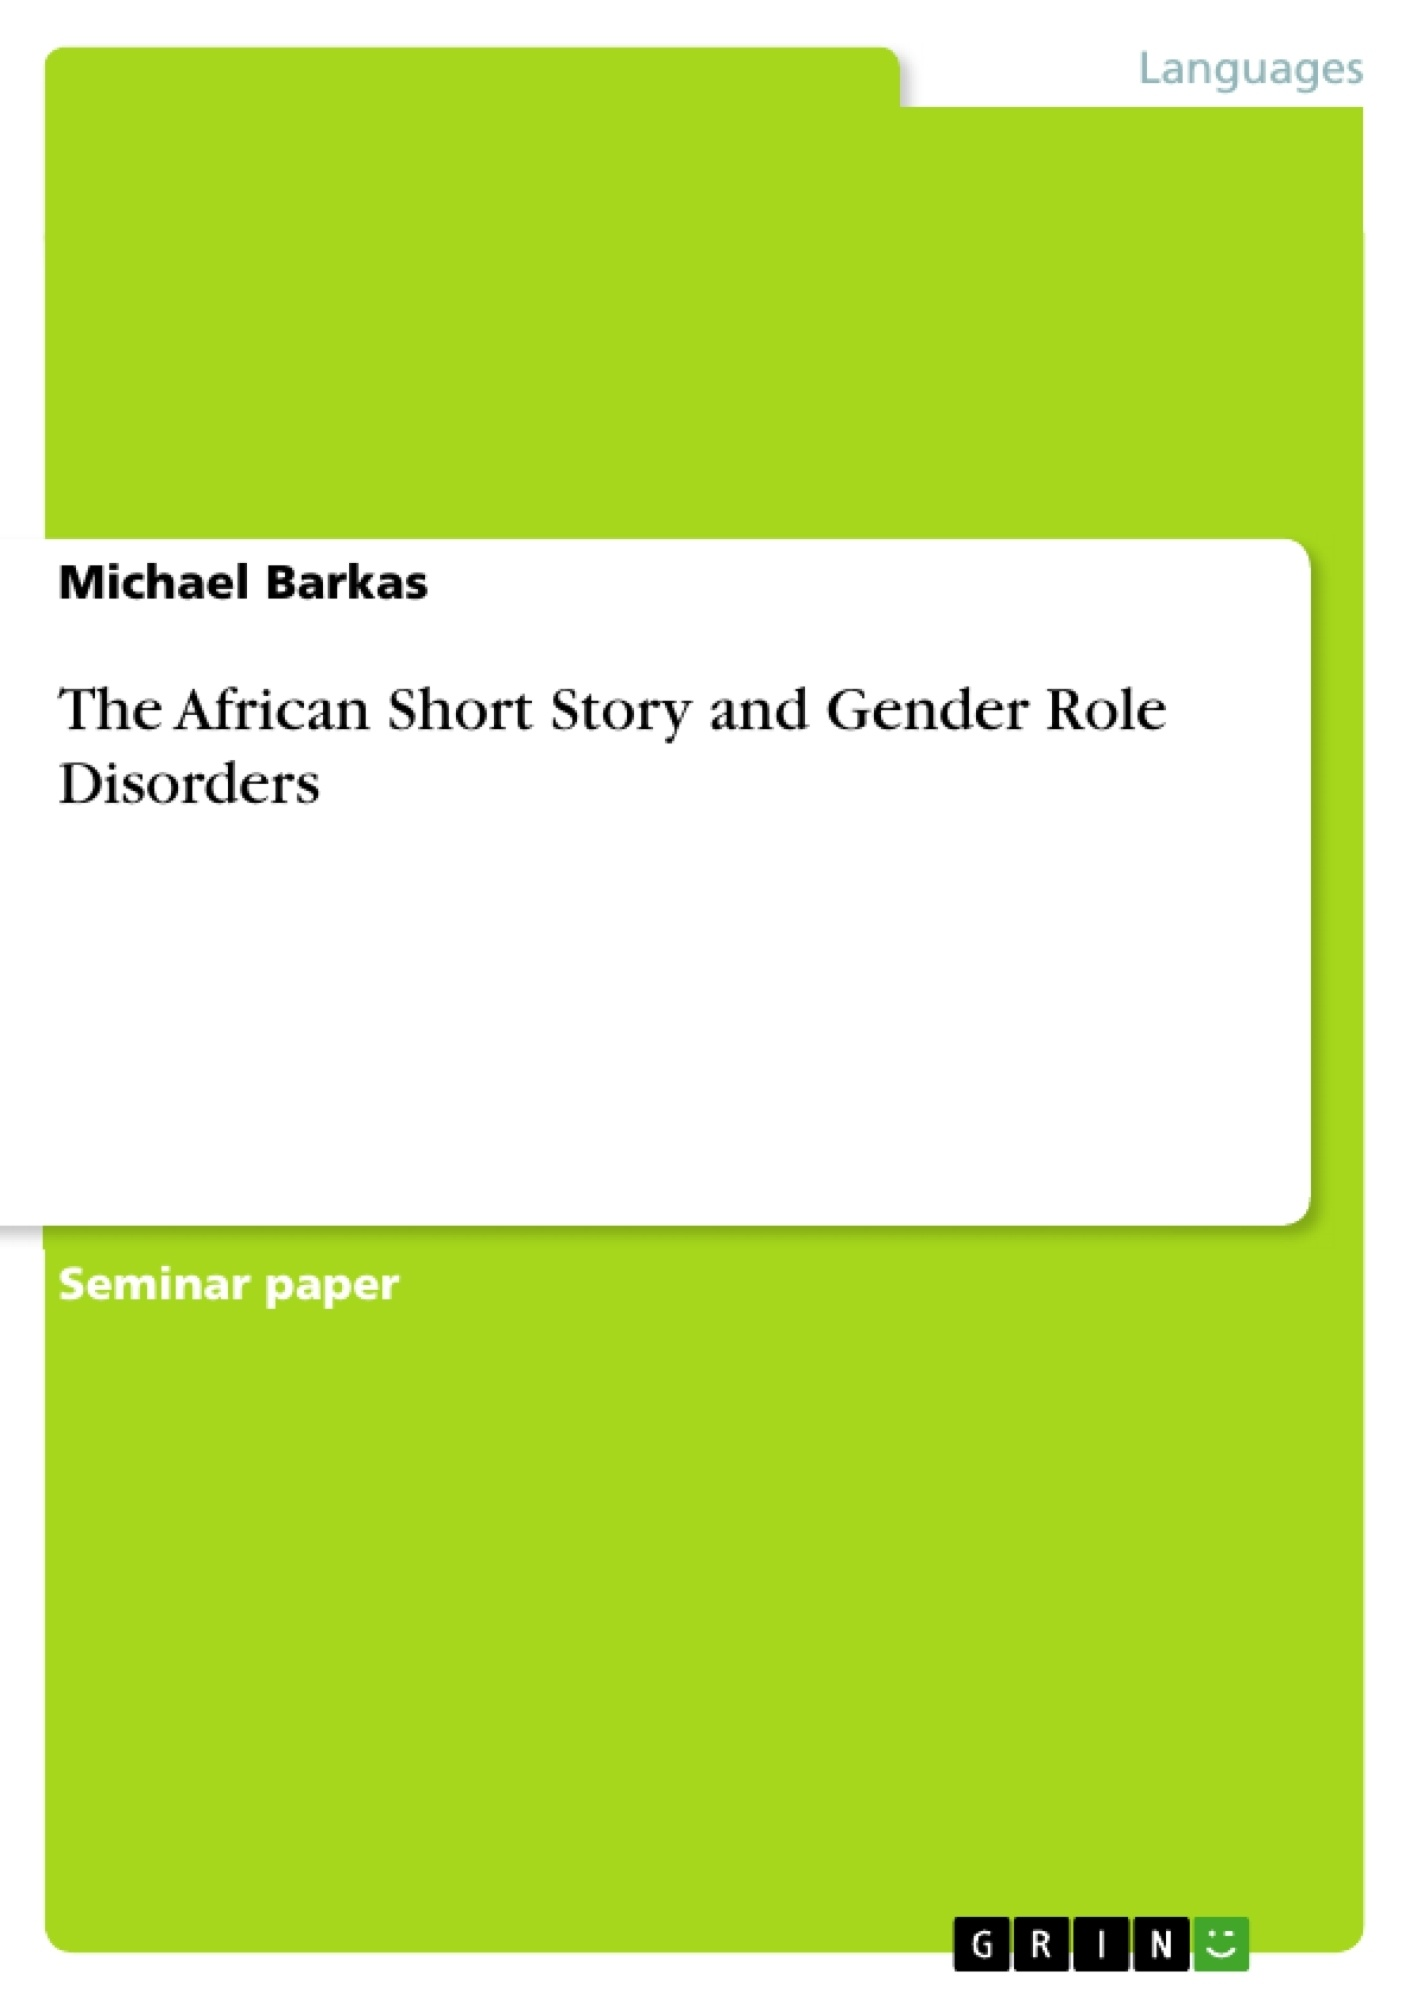 the african short story and gender role disorders publish your upload your own papers earn money and win an iphone 7